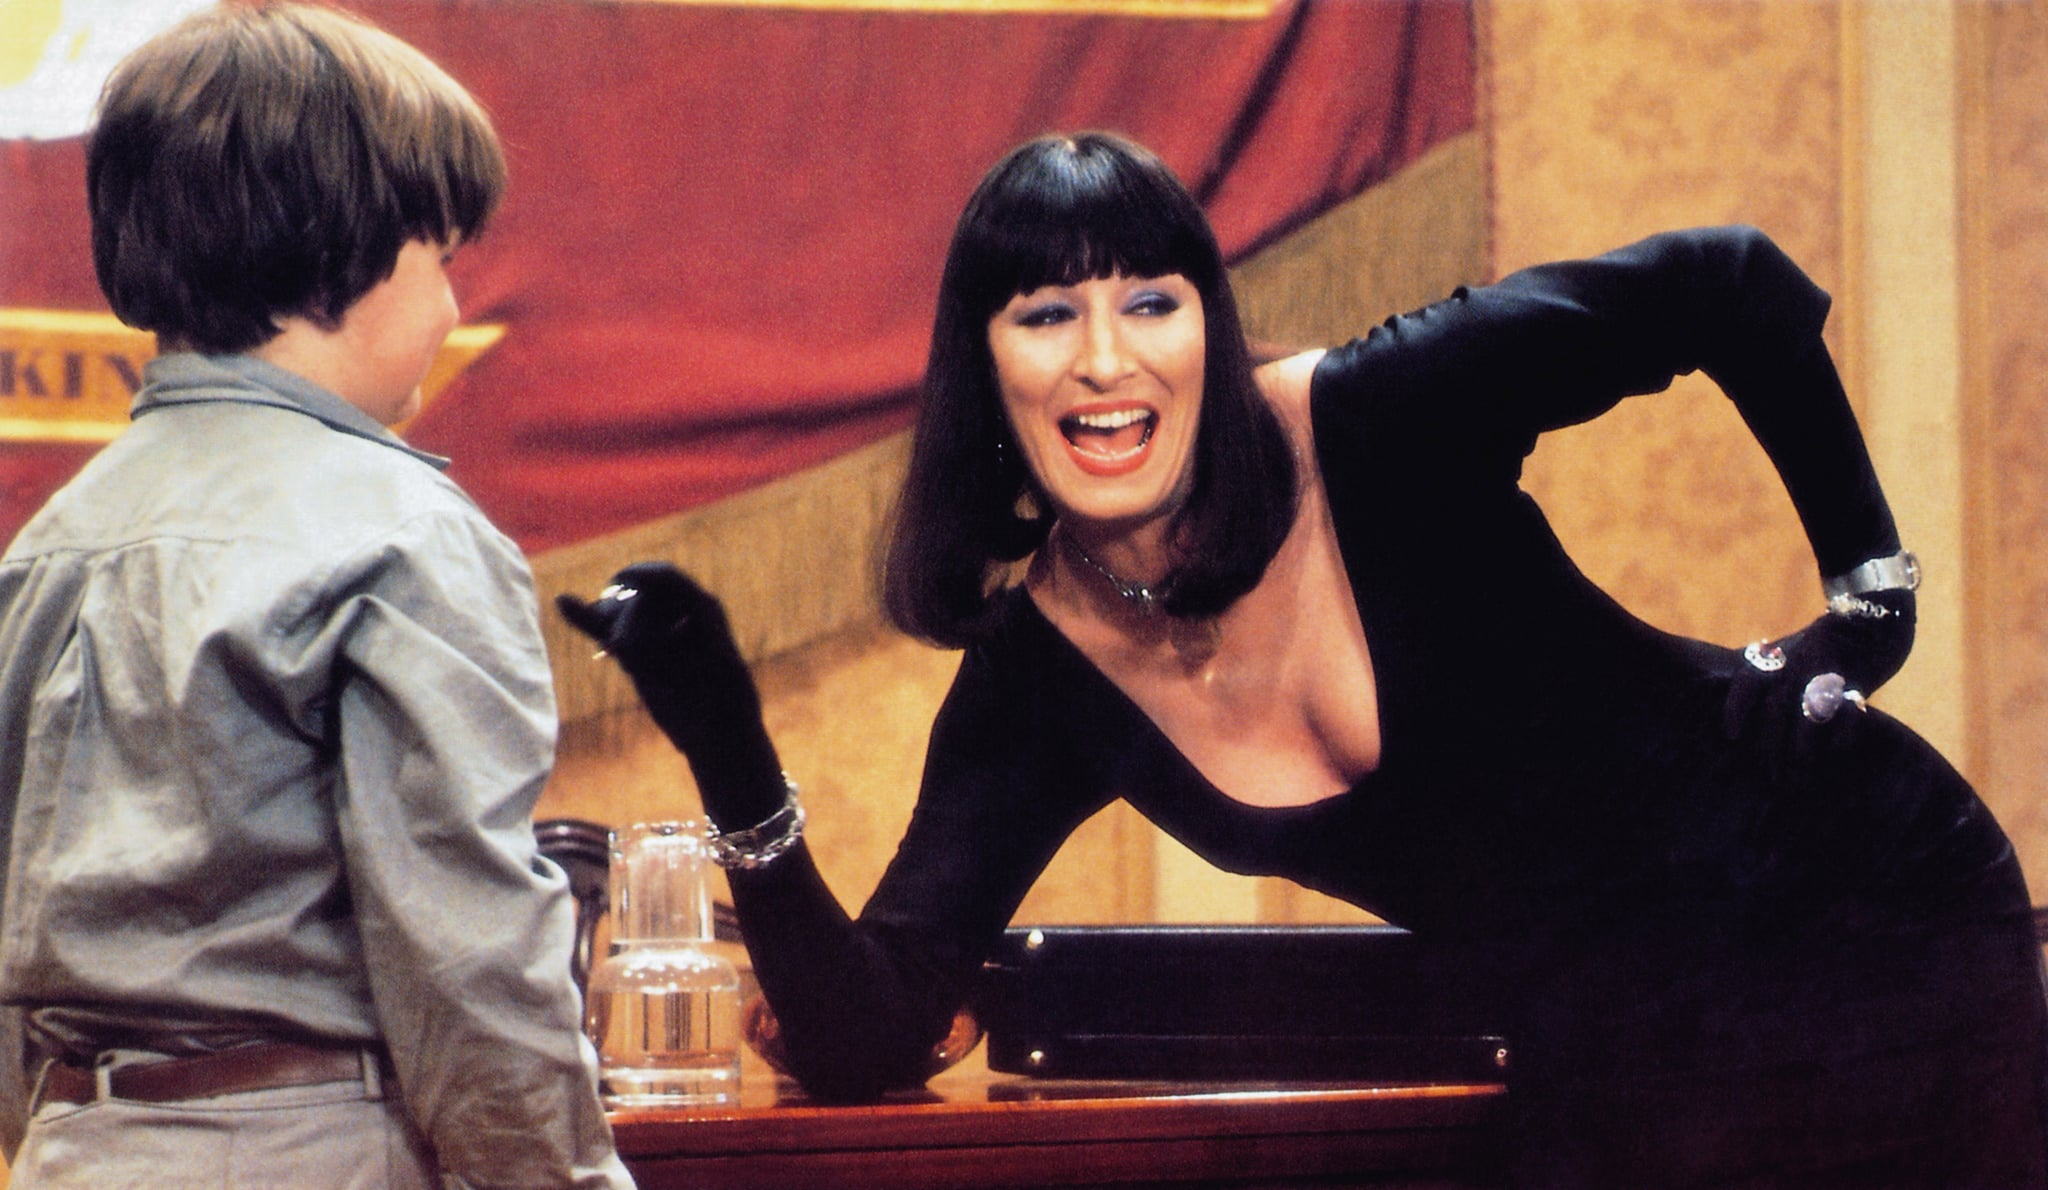 THE WITCHES, from left: Jasen Fisher, Anjelica Huston, 1990,  Warner Brothers/courtesy Everett Collection